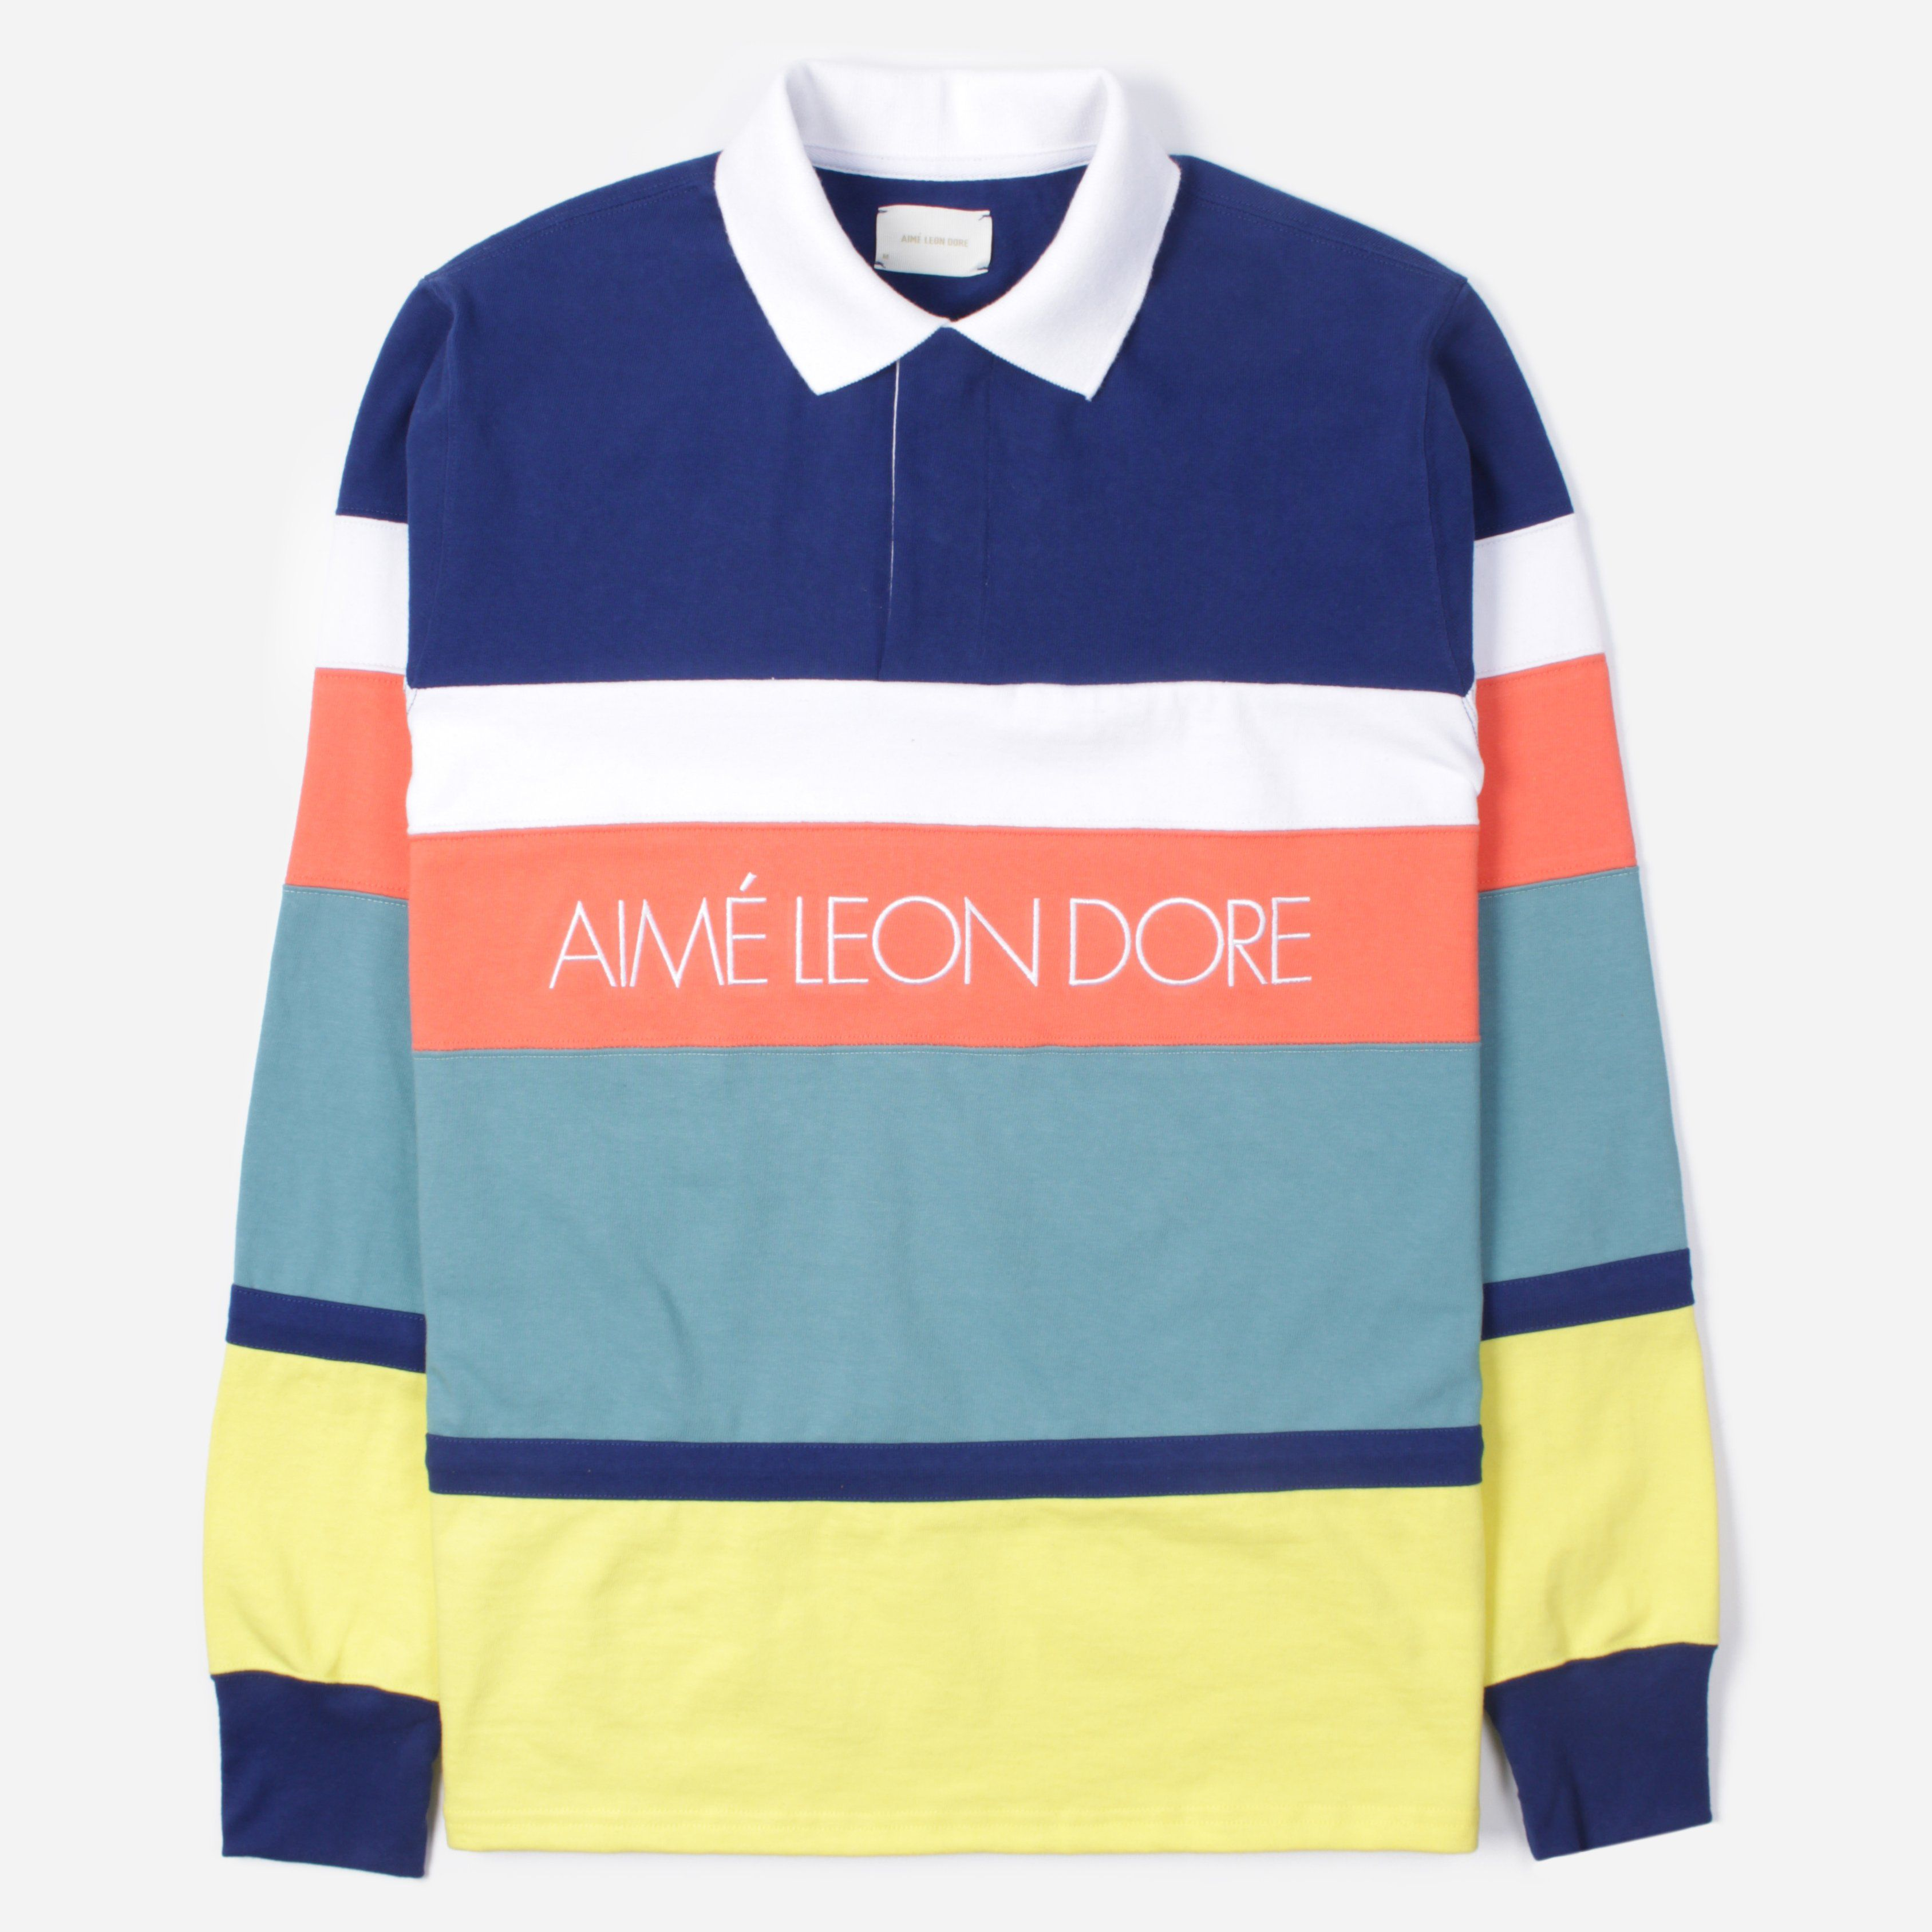 Aime Leon Dore SS19 CT013B LS STRIPPED RUGBY